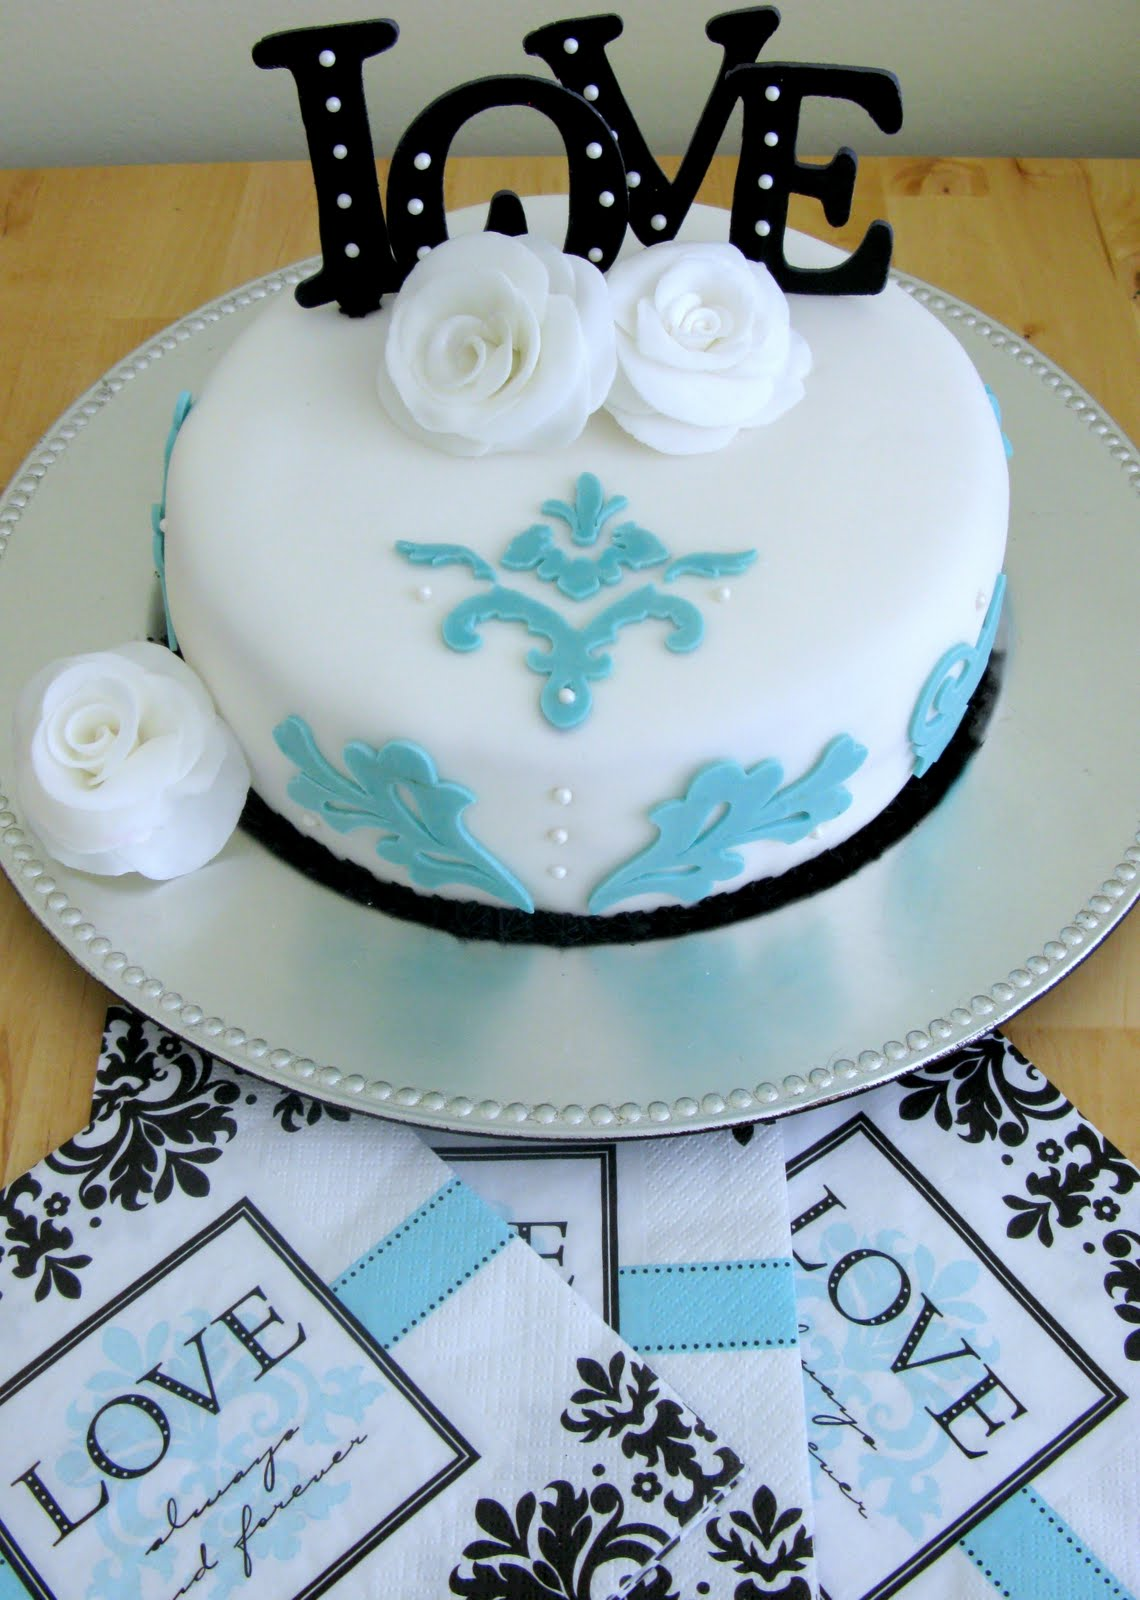 10 Pretty Bridal Shower Cakes Designs Ideas CAKE DESIGN AND DECORATING IDEAS